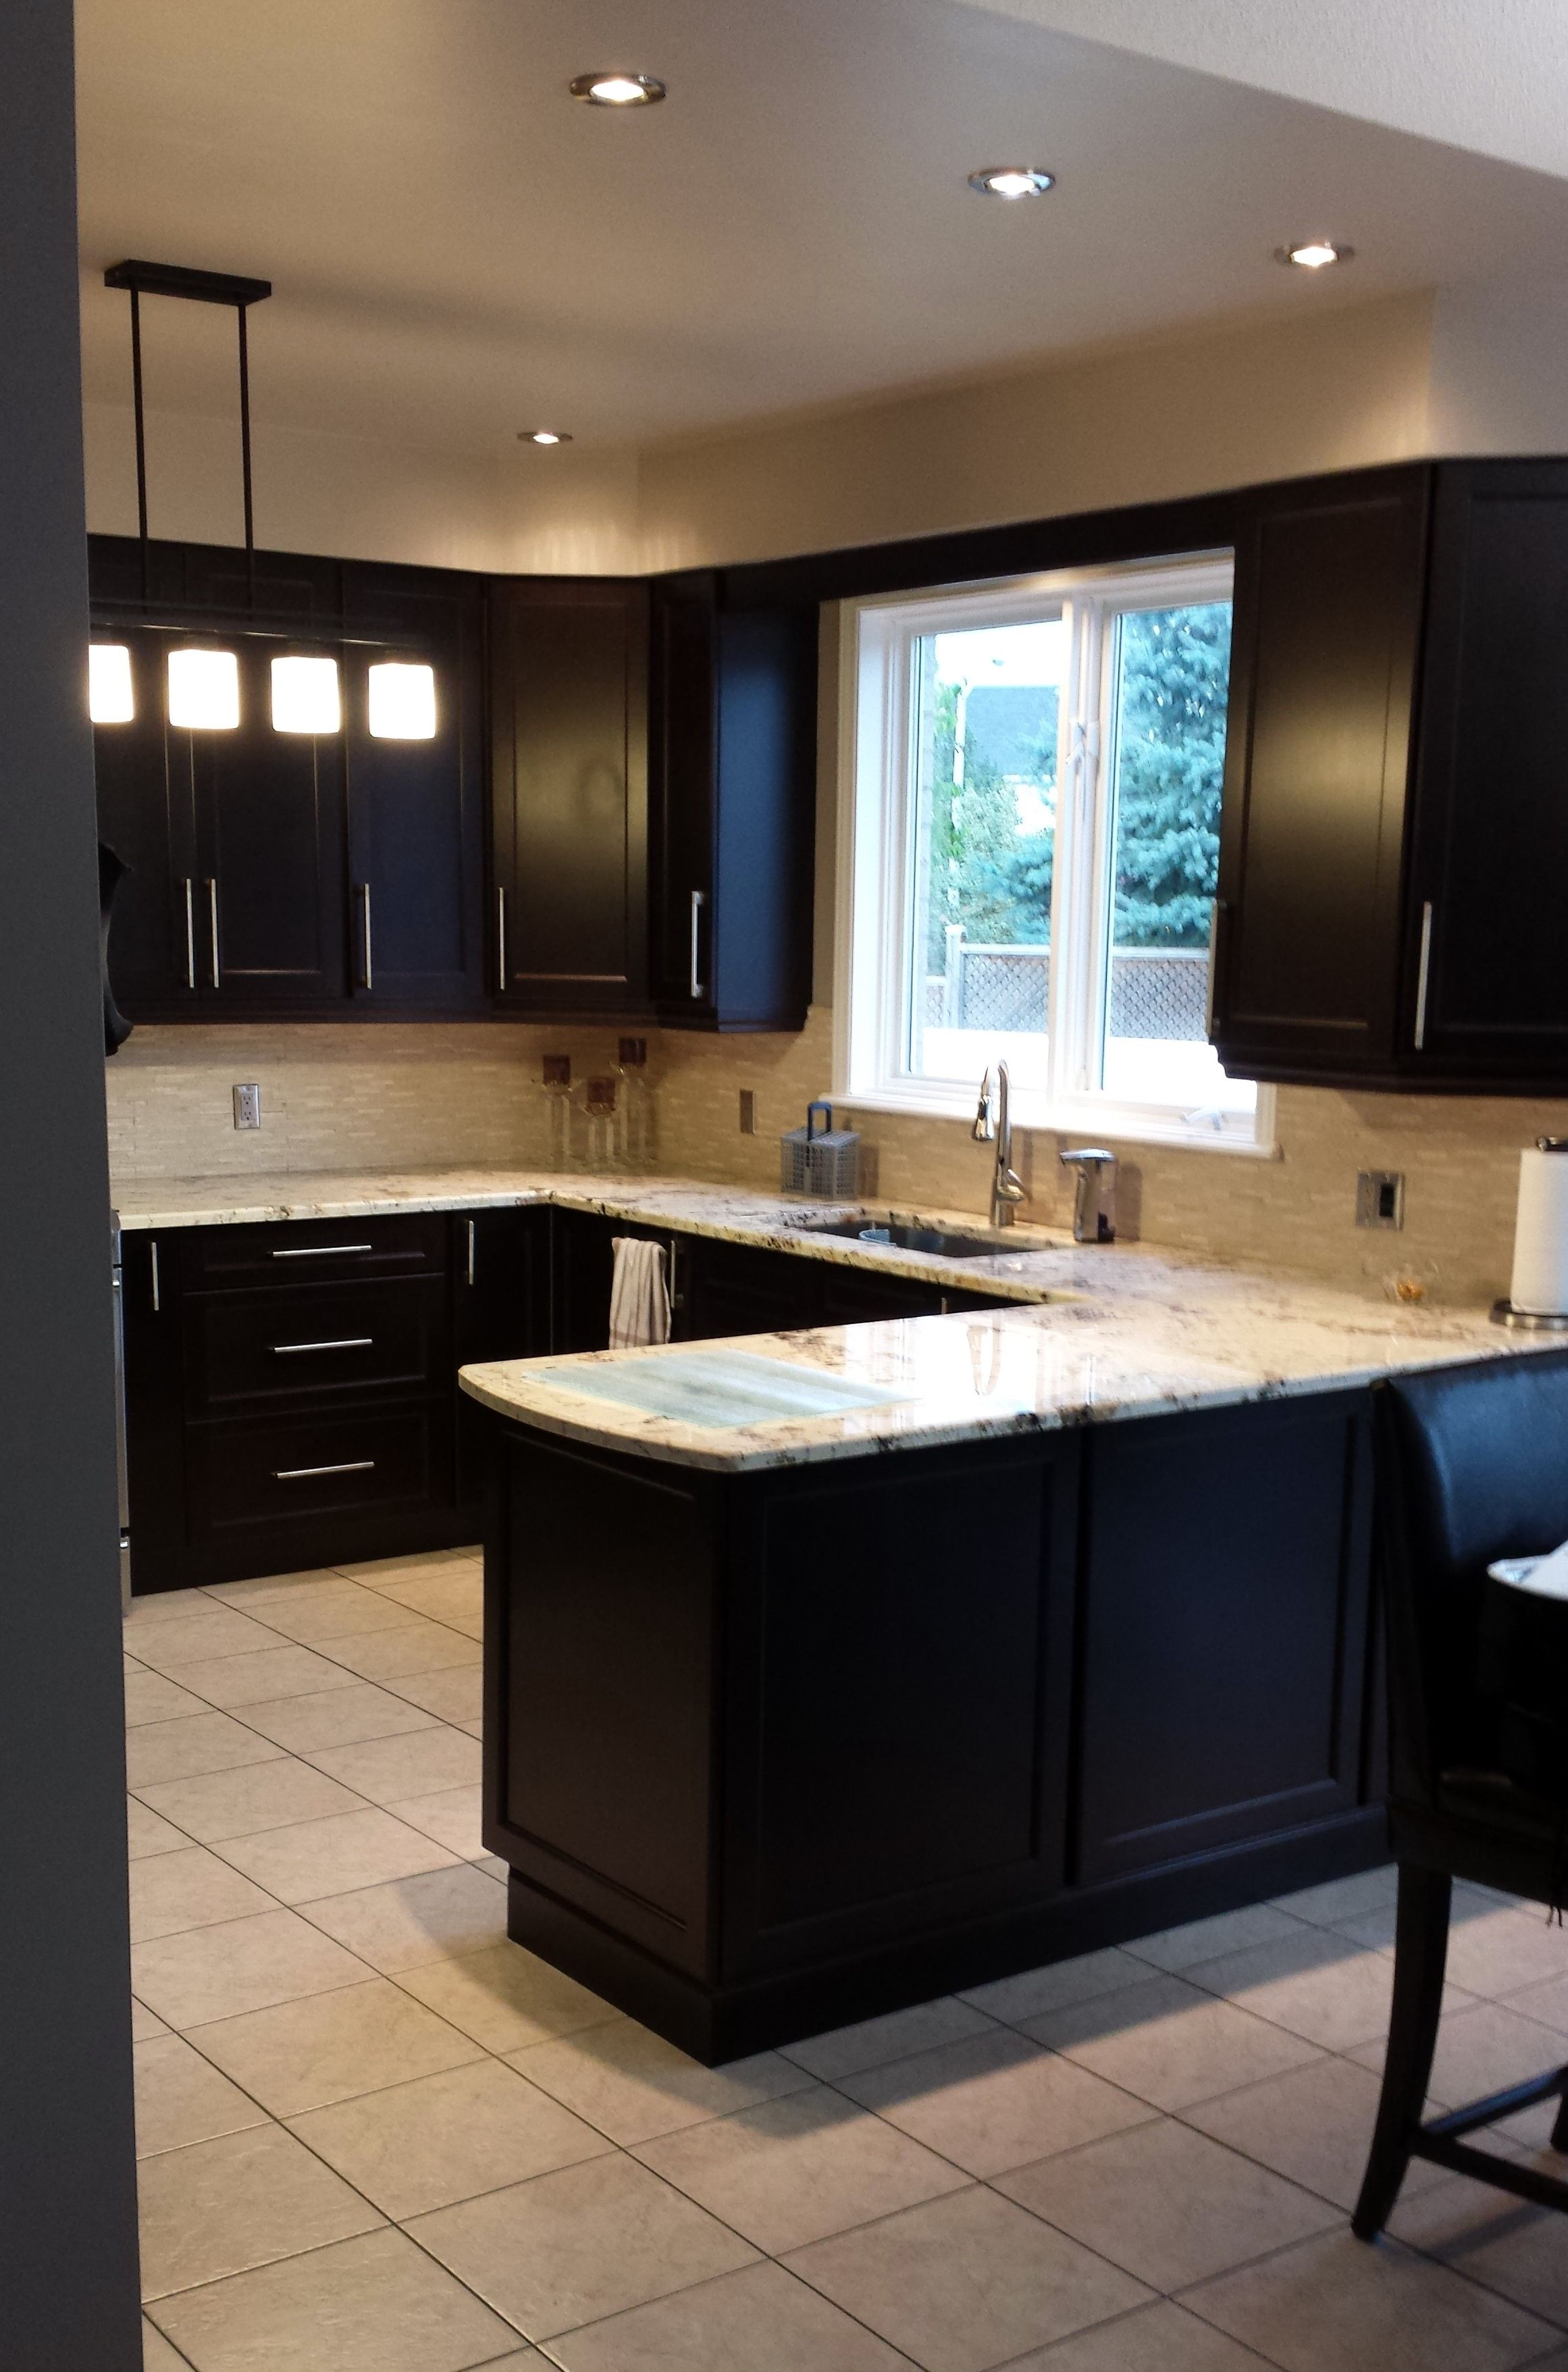 Kitchen Craft Touren Maple Cabinets Espresso Finish Delicatus Granite Espresso Kitchen Cabinets Maple Cabinets Espresso Cabinets